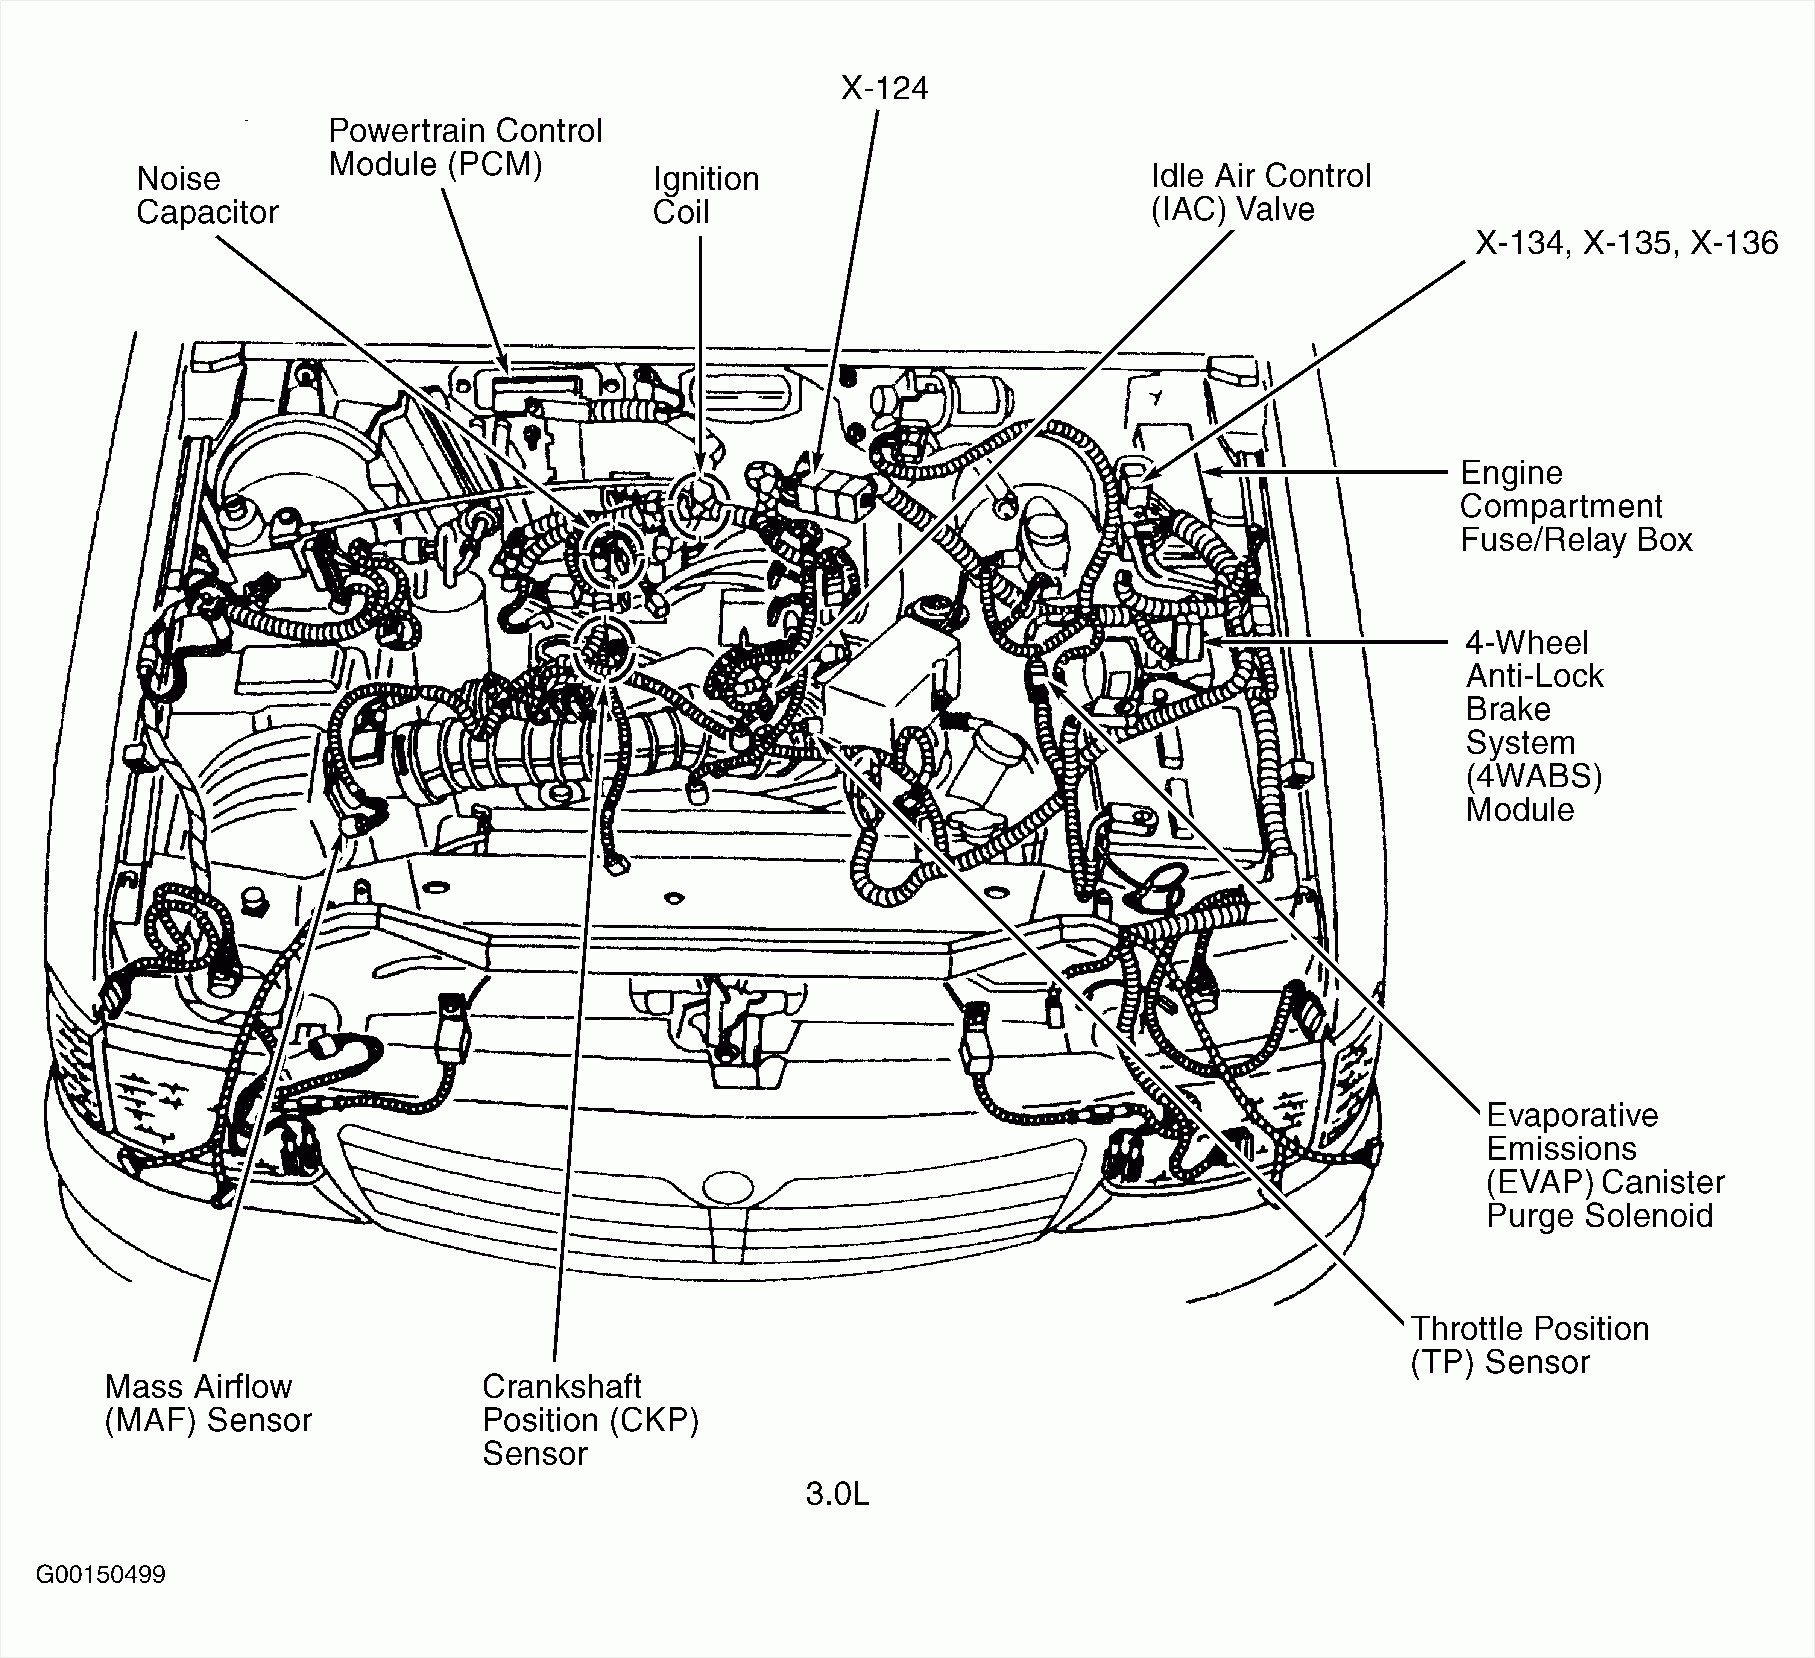 2003 Vw Jetta 2 0 Engine Diagram 2 2004 Mazda 6 V6 Engine Diagram Wiring  Diagrams